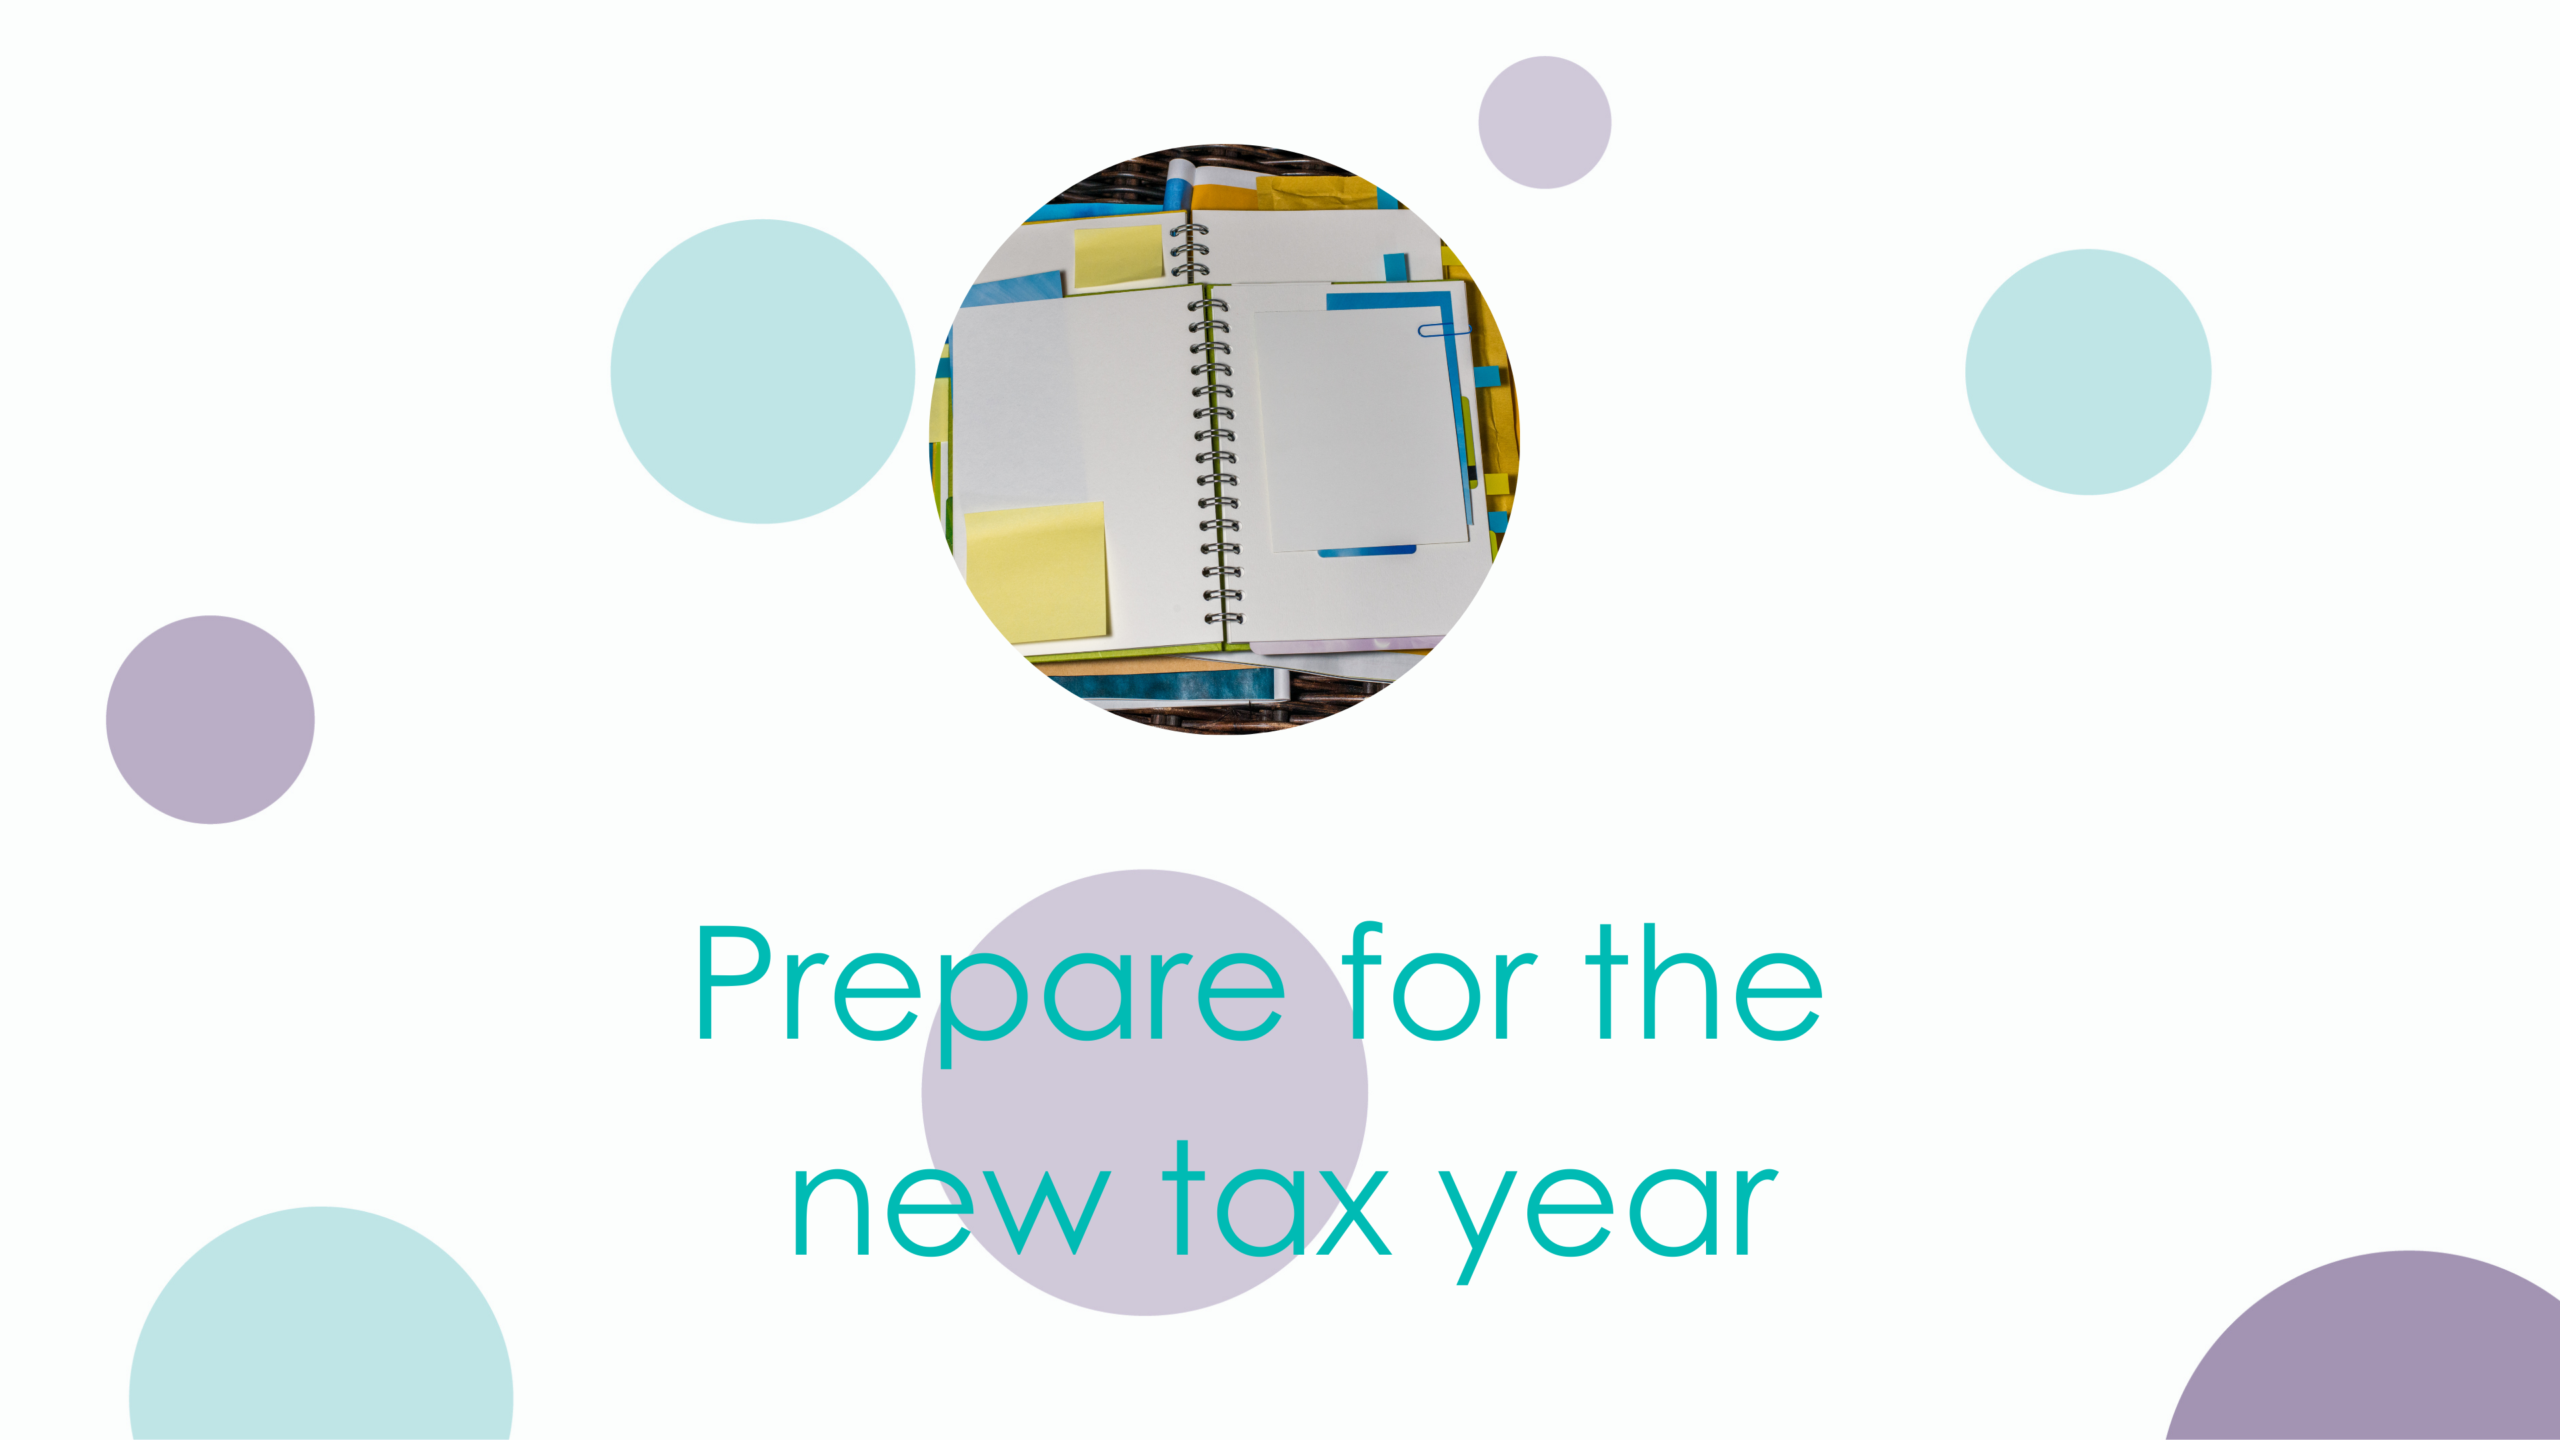 Prepare for the new tax year